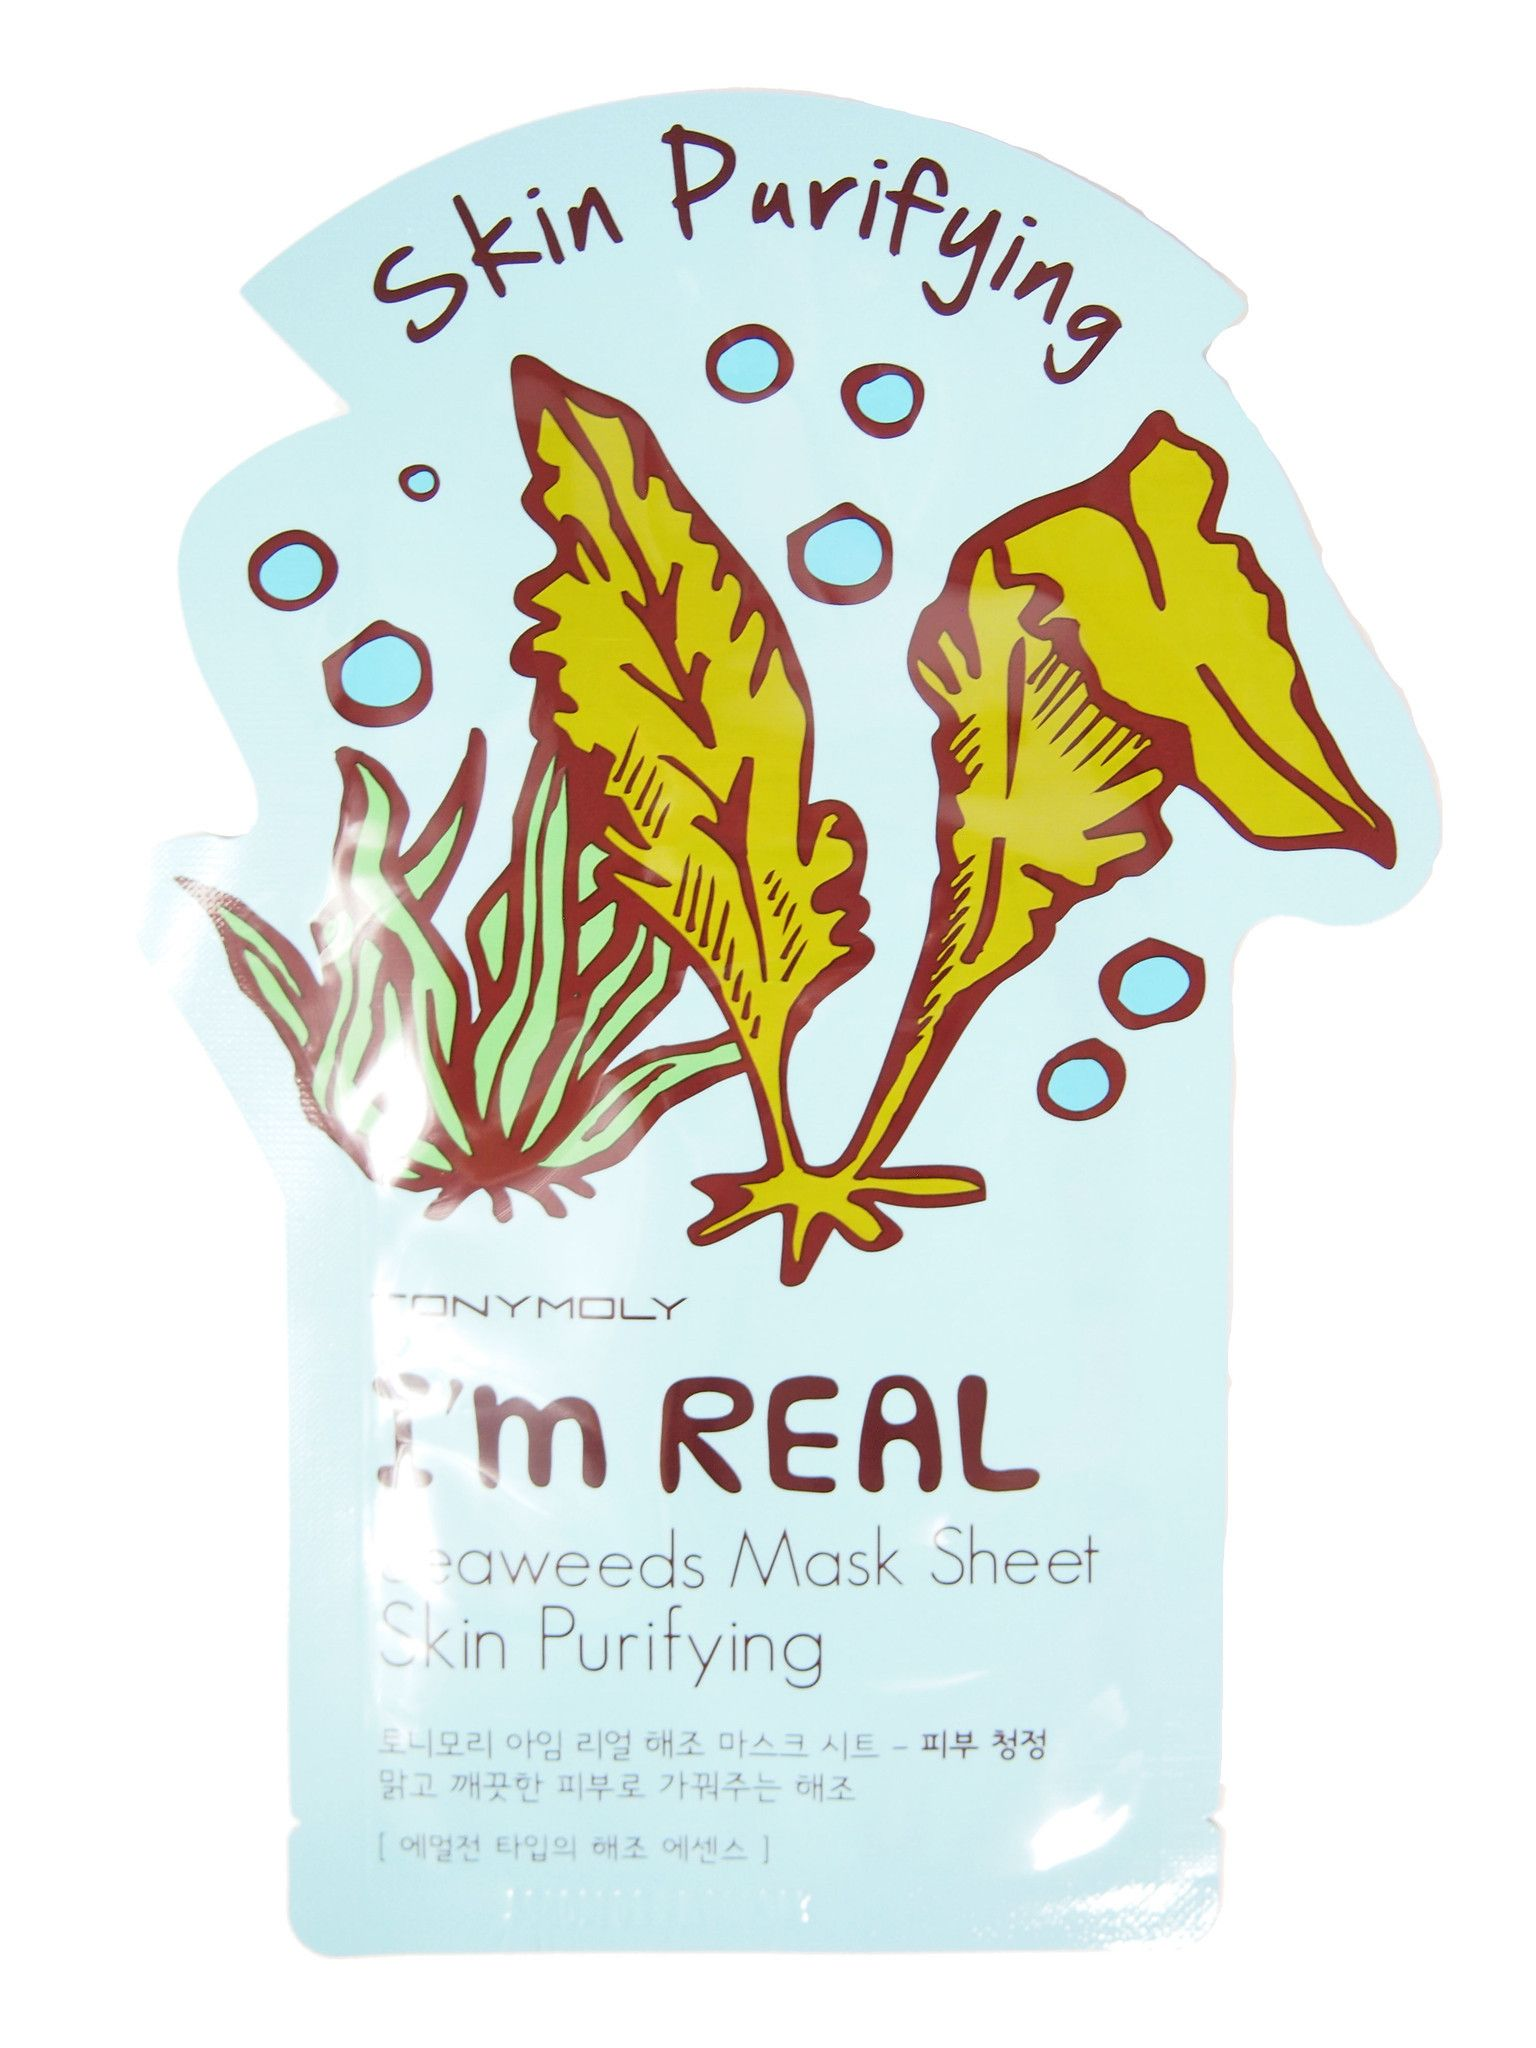 Tony Moly: I'm Real Seaweed Mask Sheet - Skin Purifying